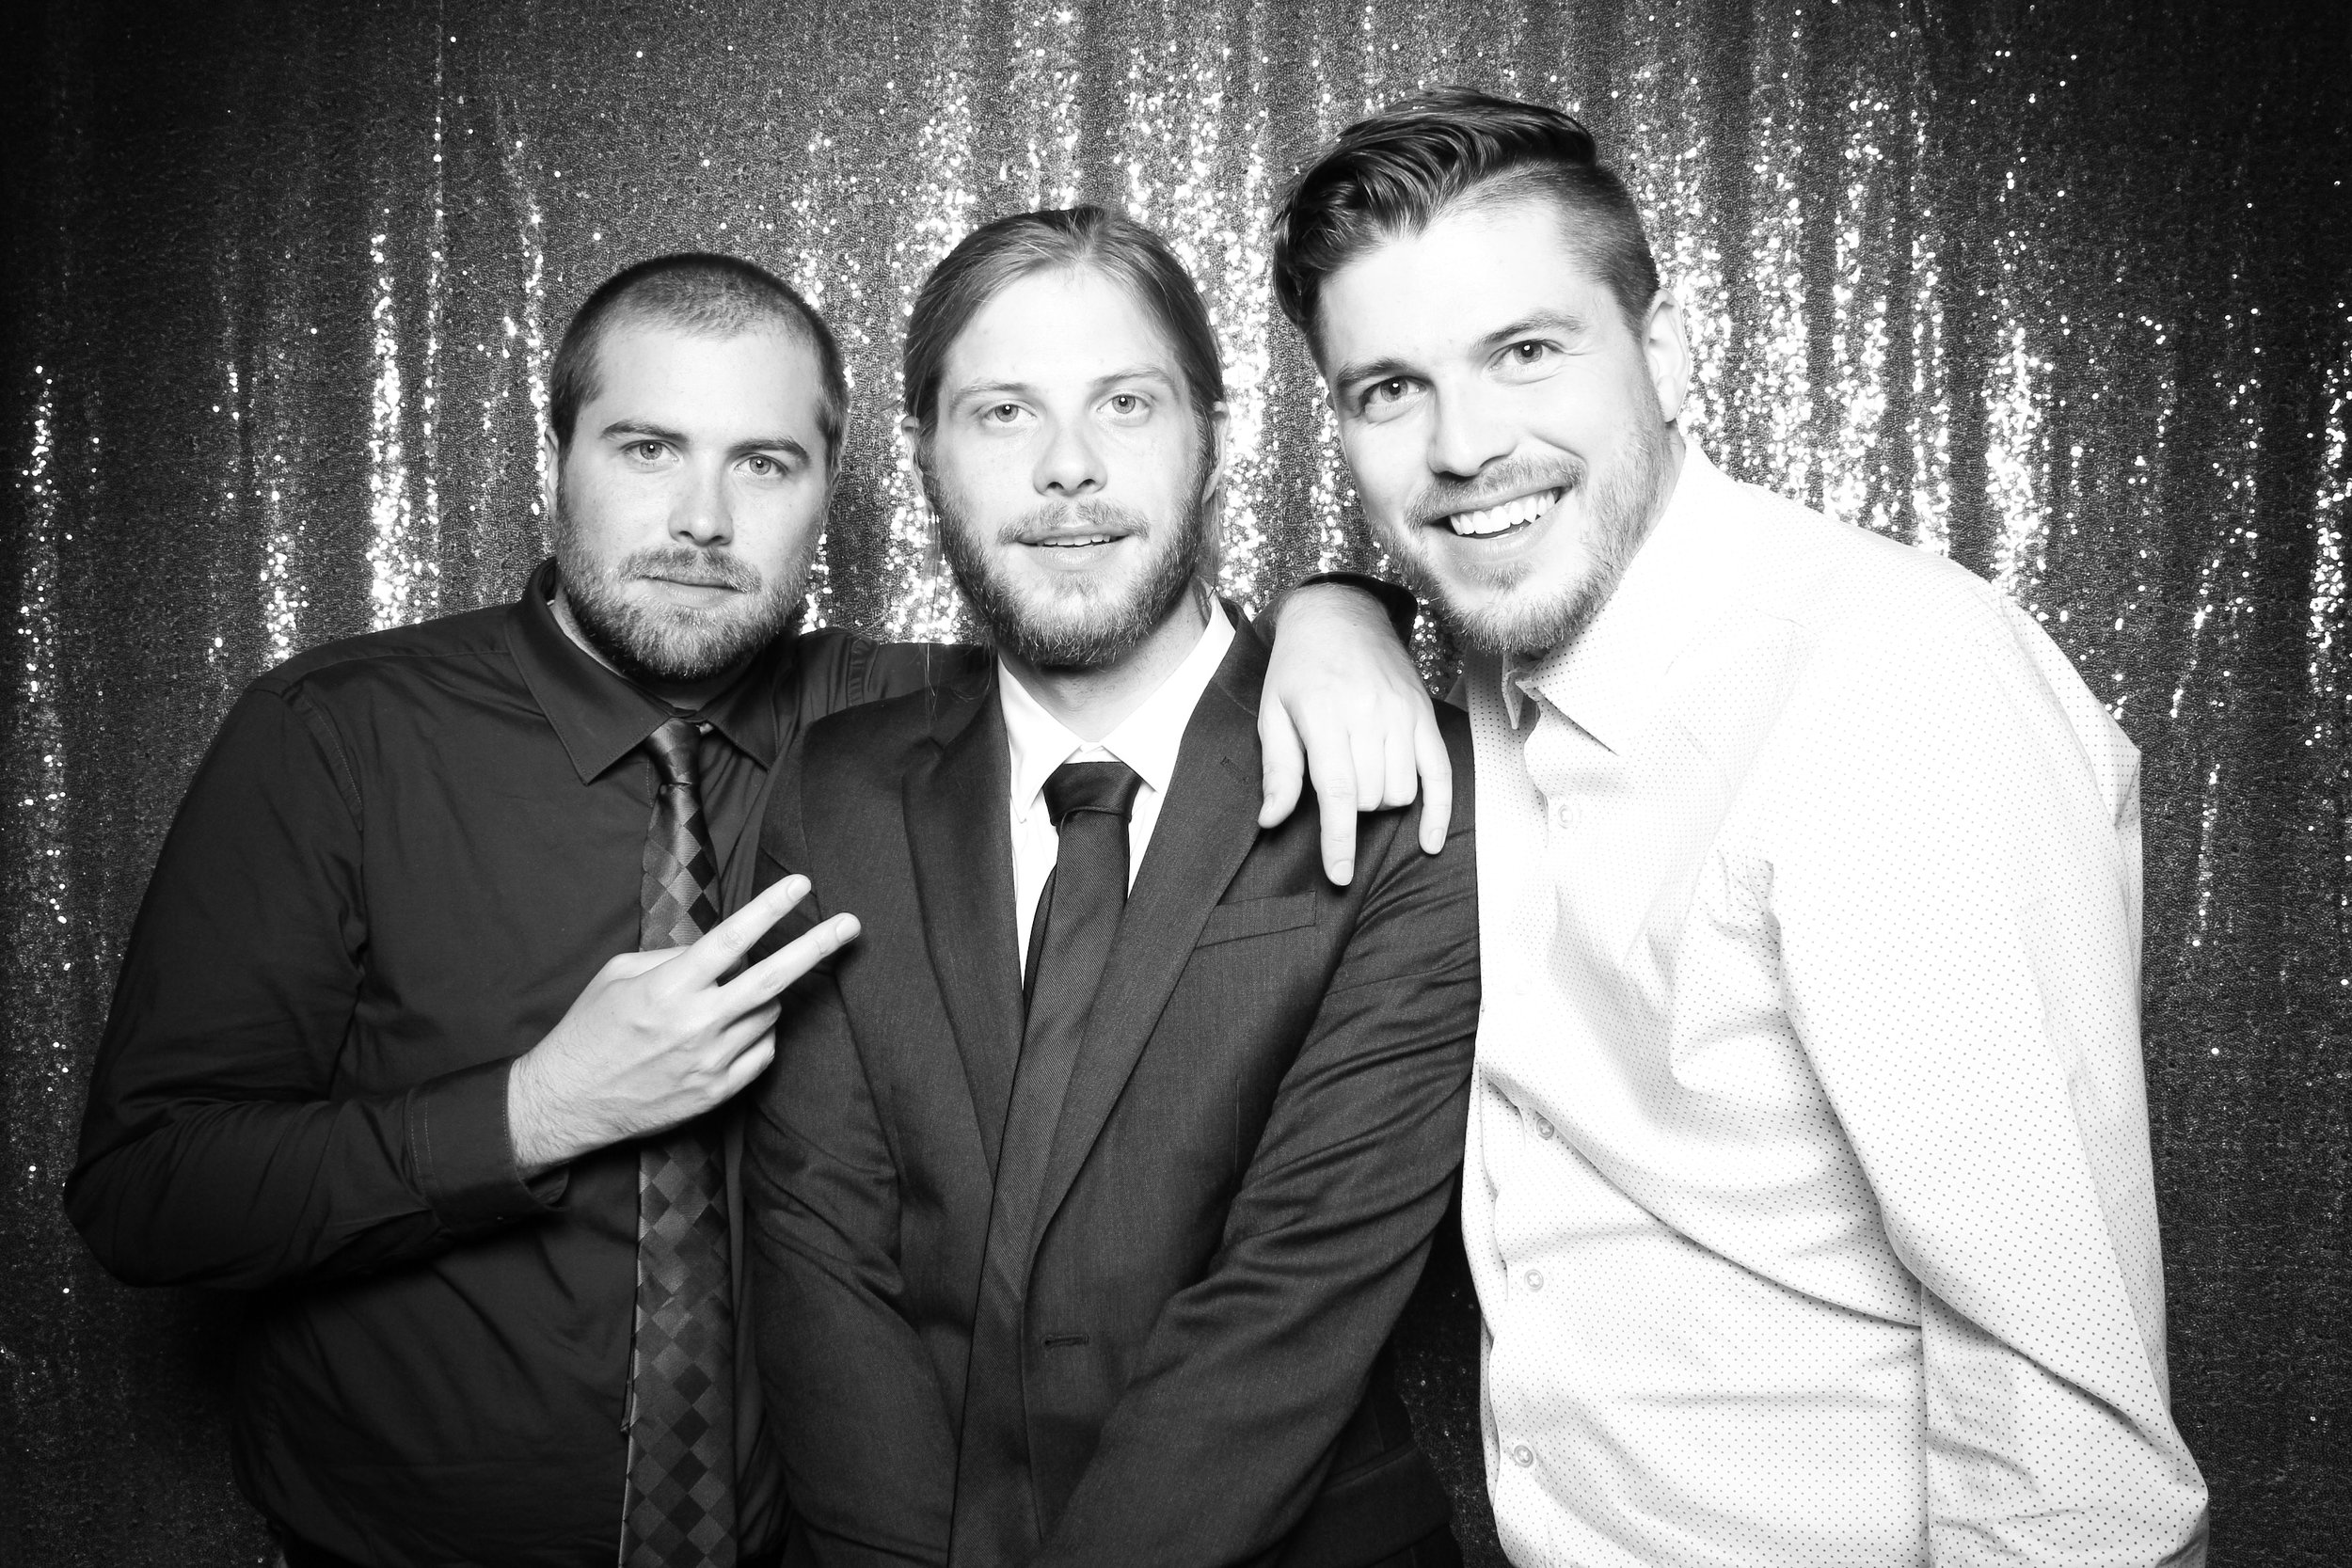 Chicago_Vintage_Wedding_Photobooth_Wisconsin_16.jpg